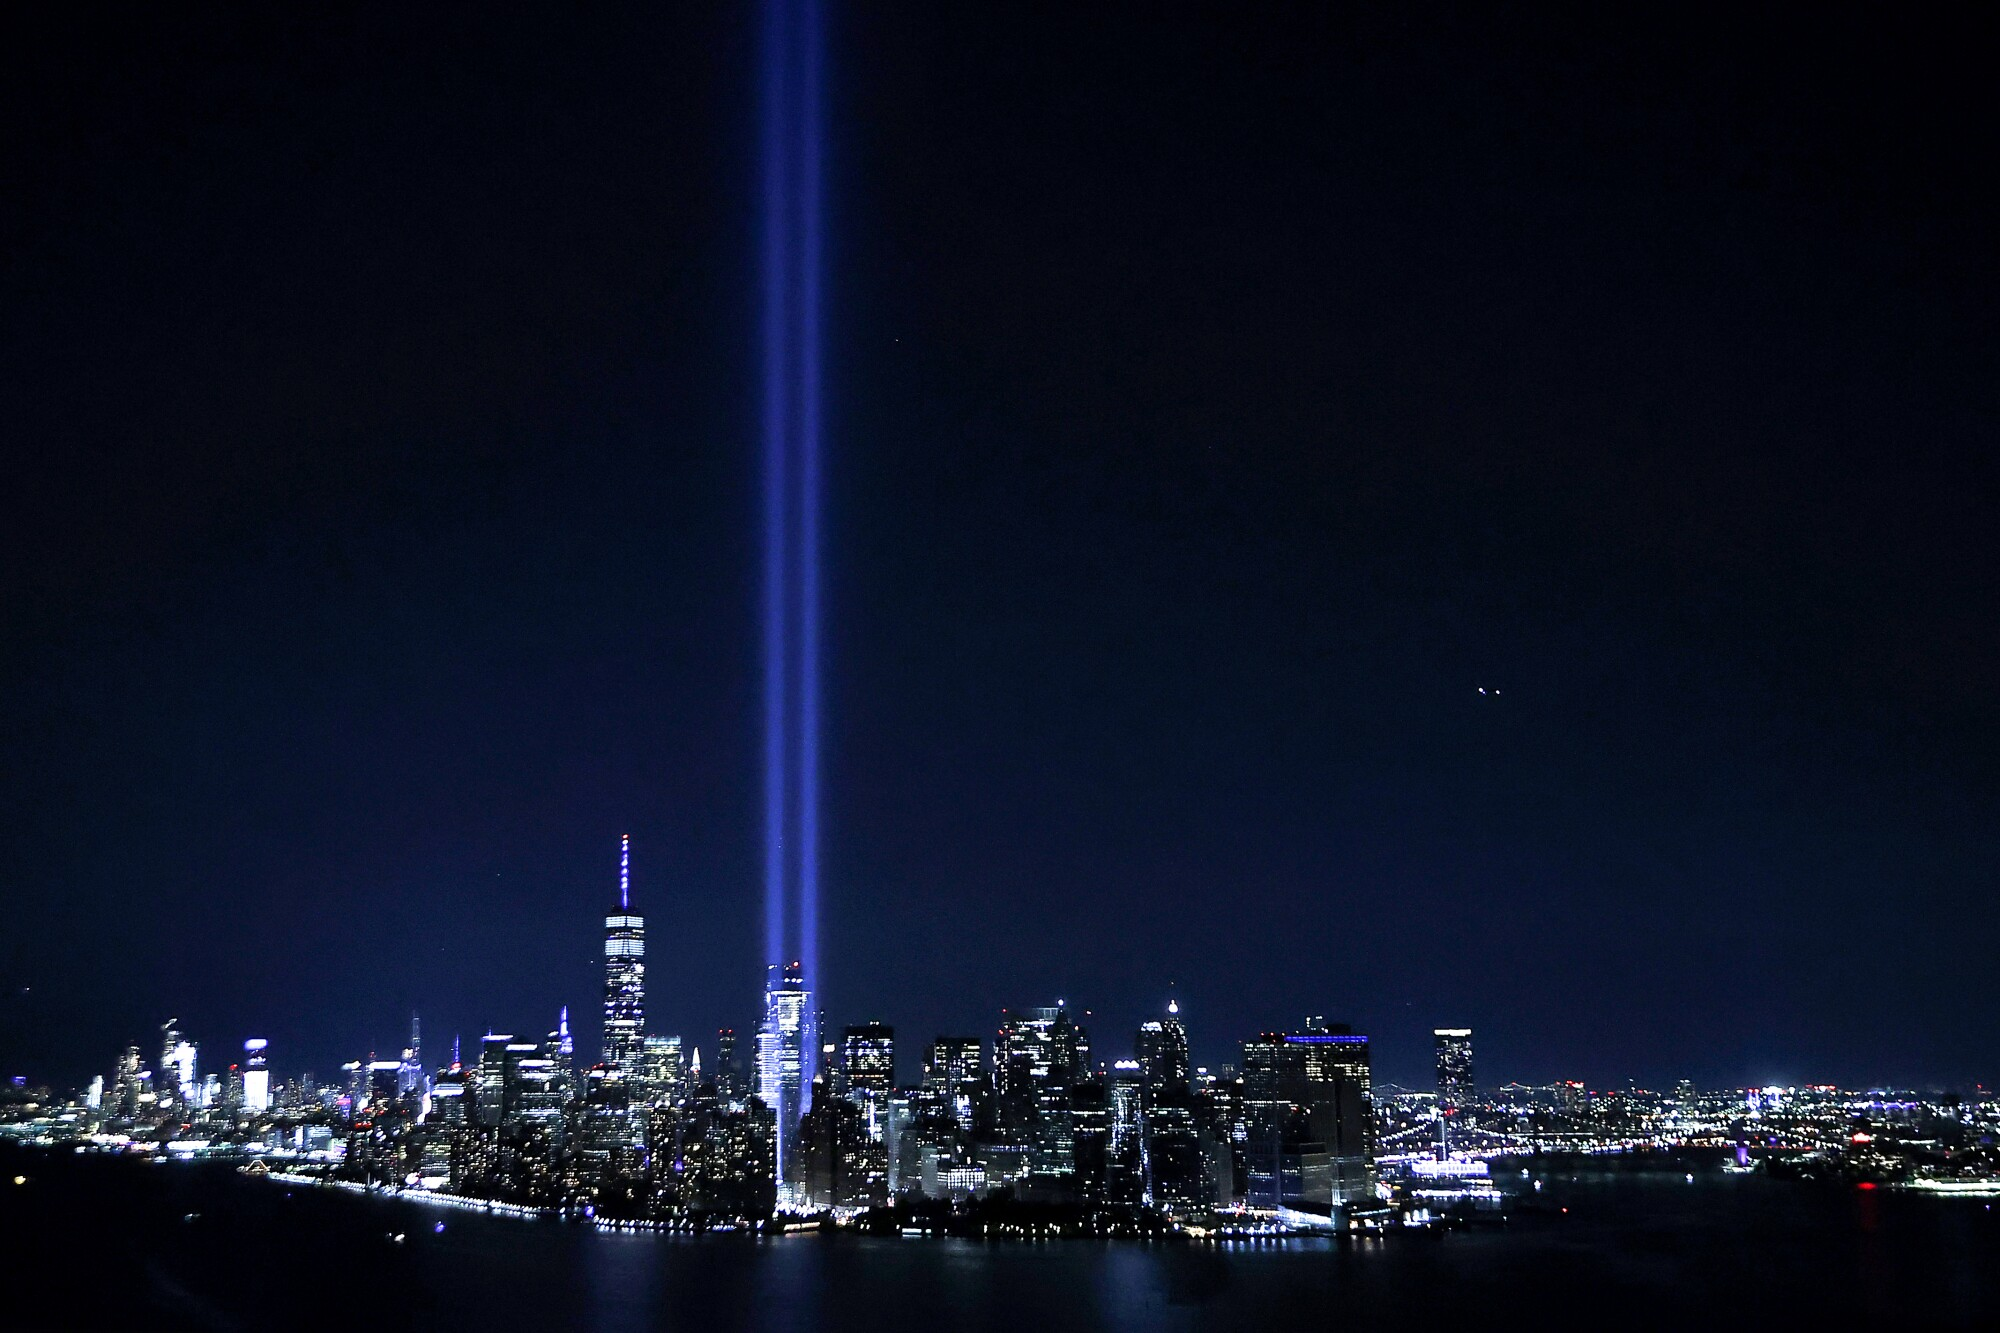 The Tribute in Light showing two columns of light reaching into the night sky shines up from the Manhattan skyline.